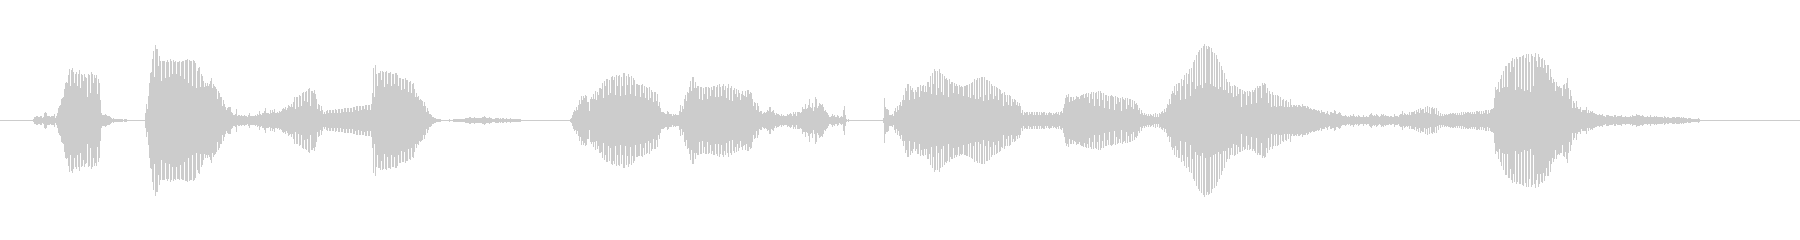 Nice to meet you 6 year old girl's unreproduced waveform